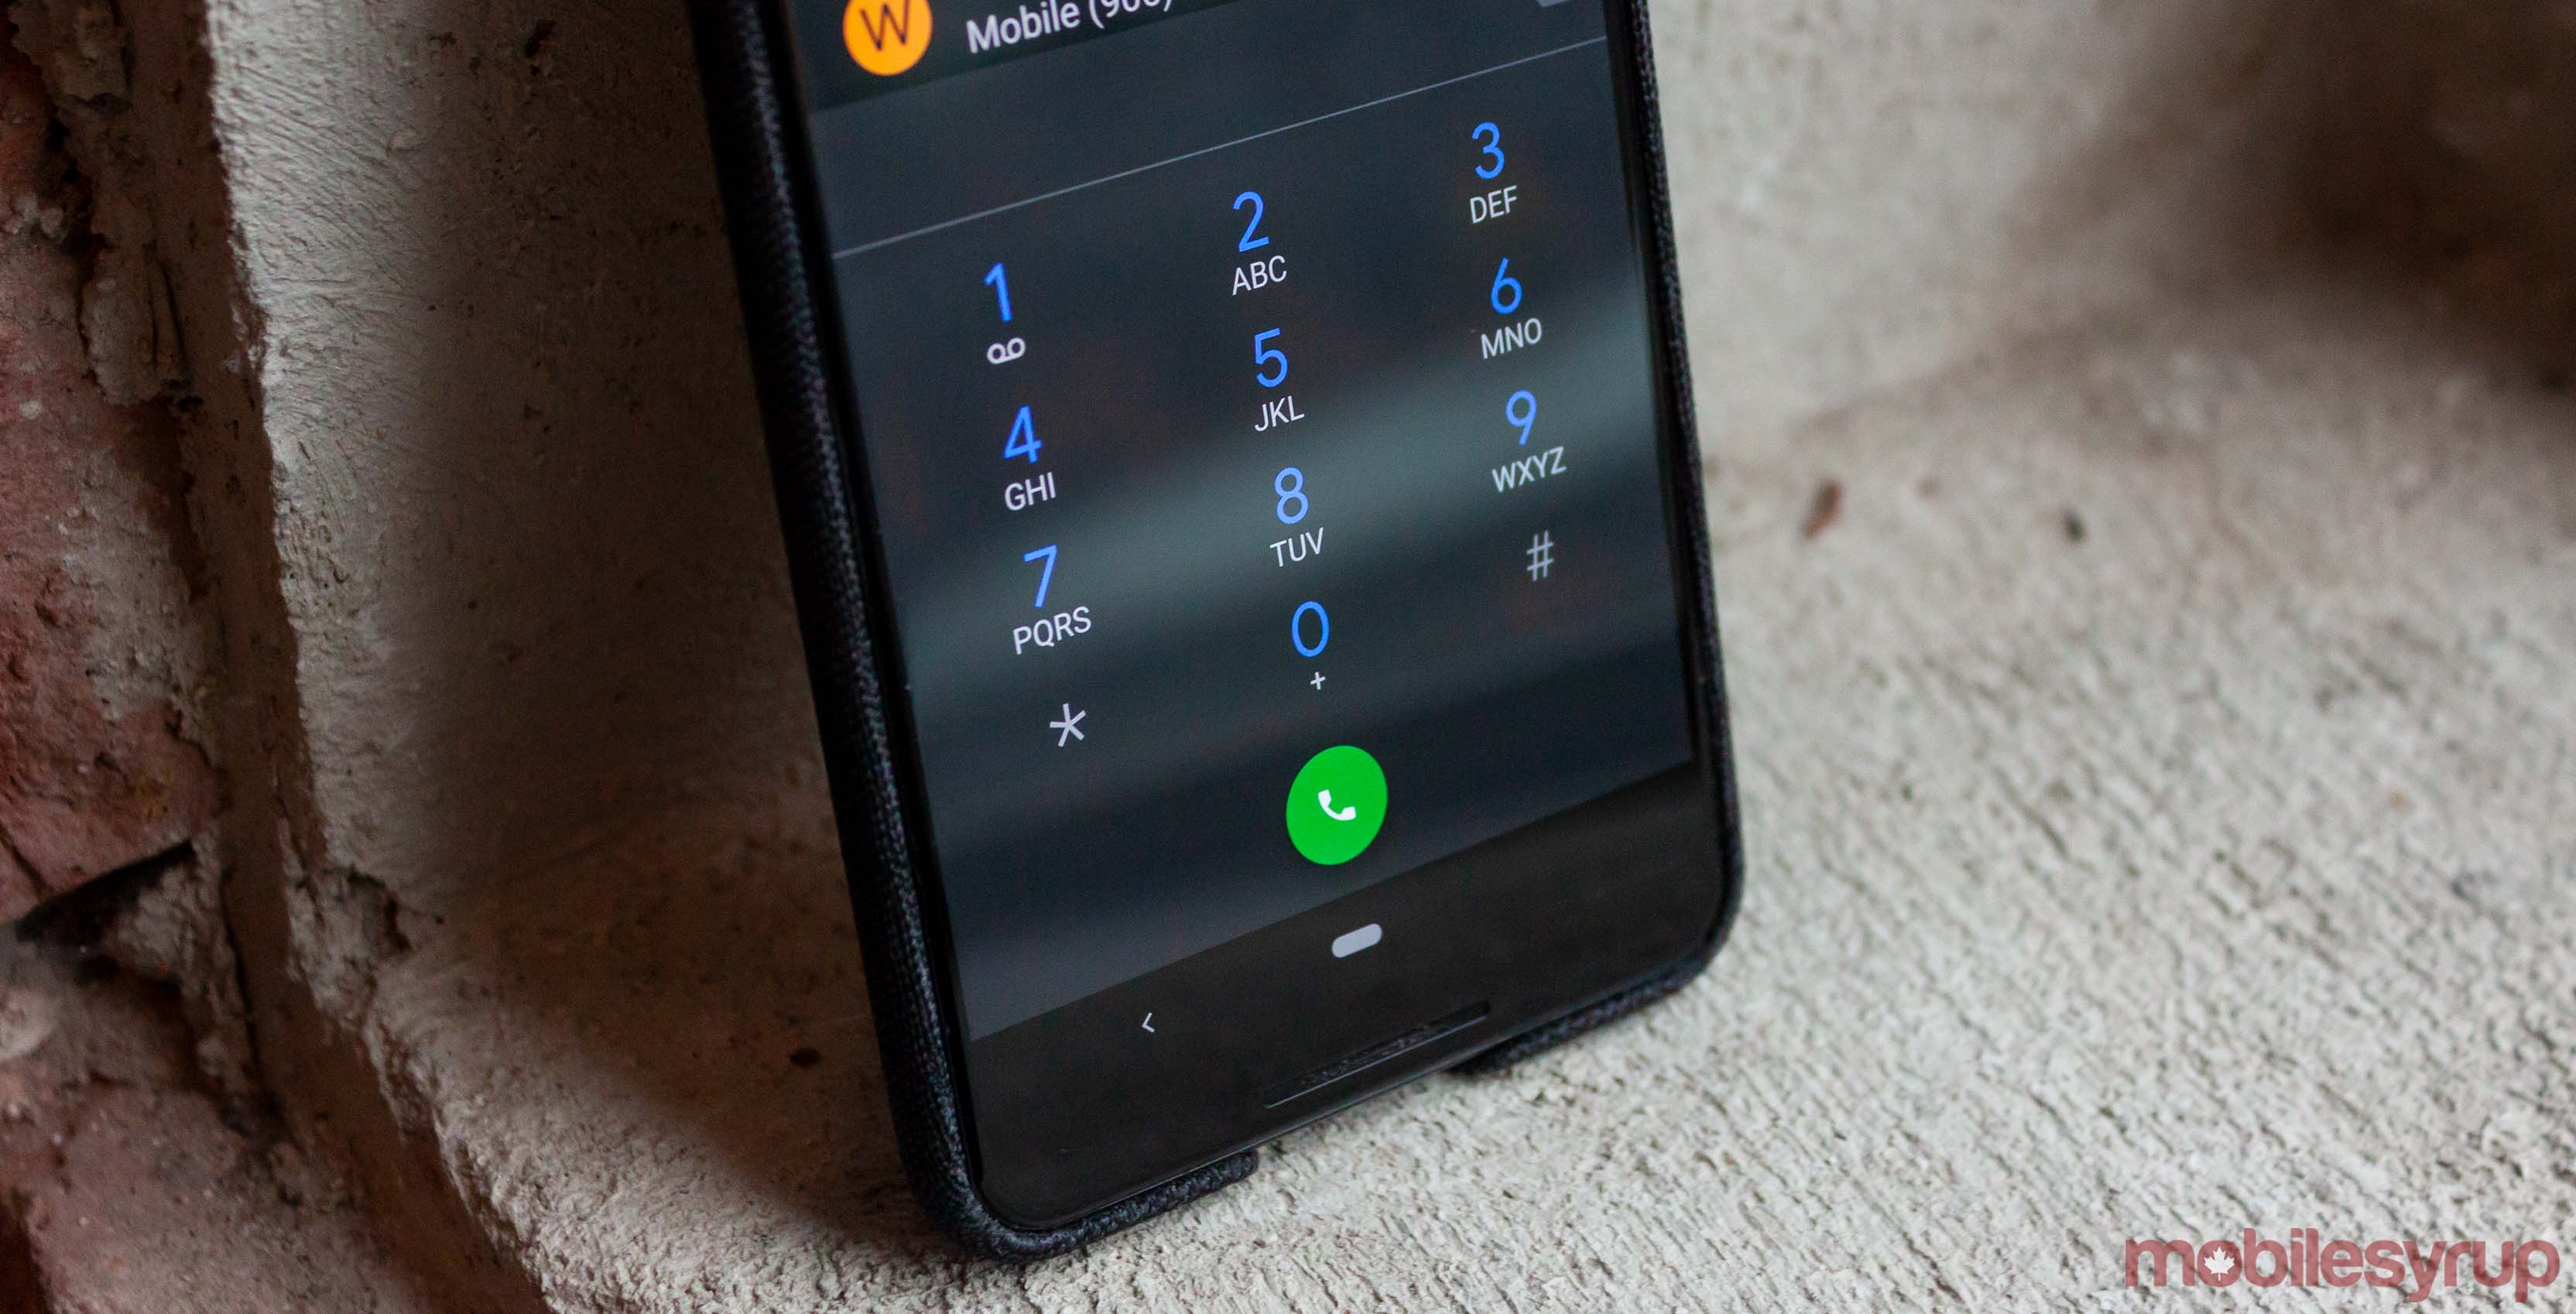 Canadian Pixel owners can now beta test Call Screen